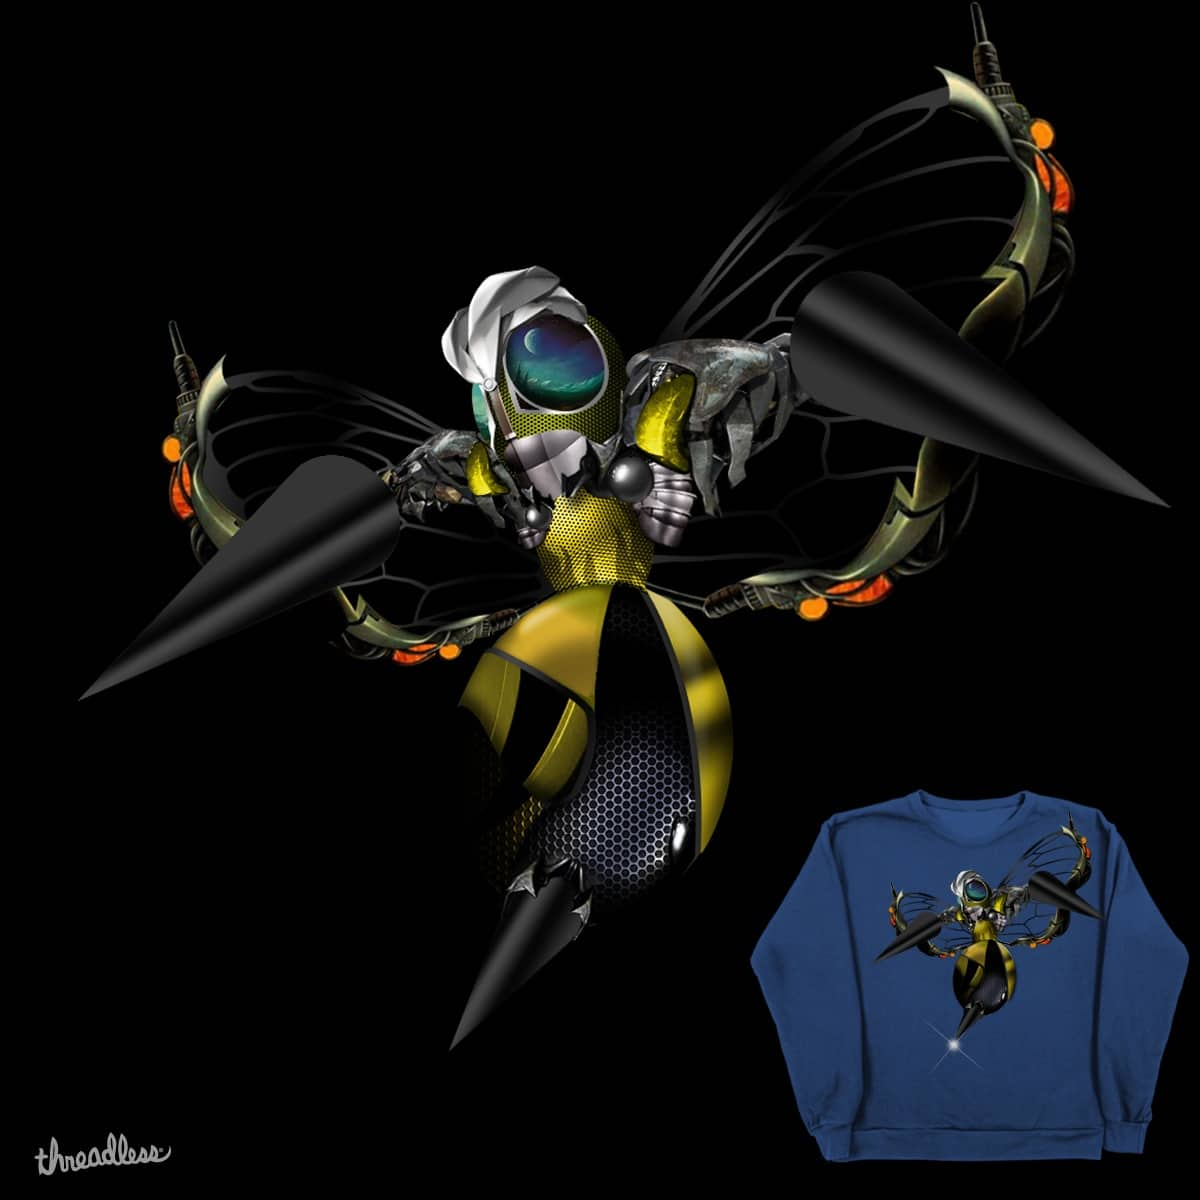 When Beedrill Joins Transformers by migagel30 on Threadless